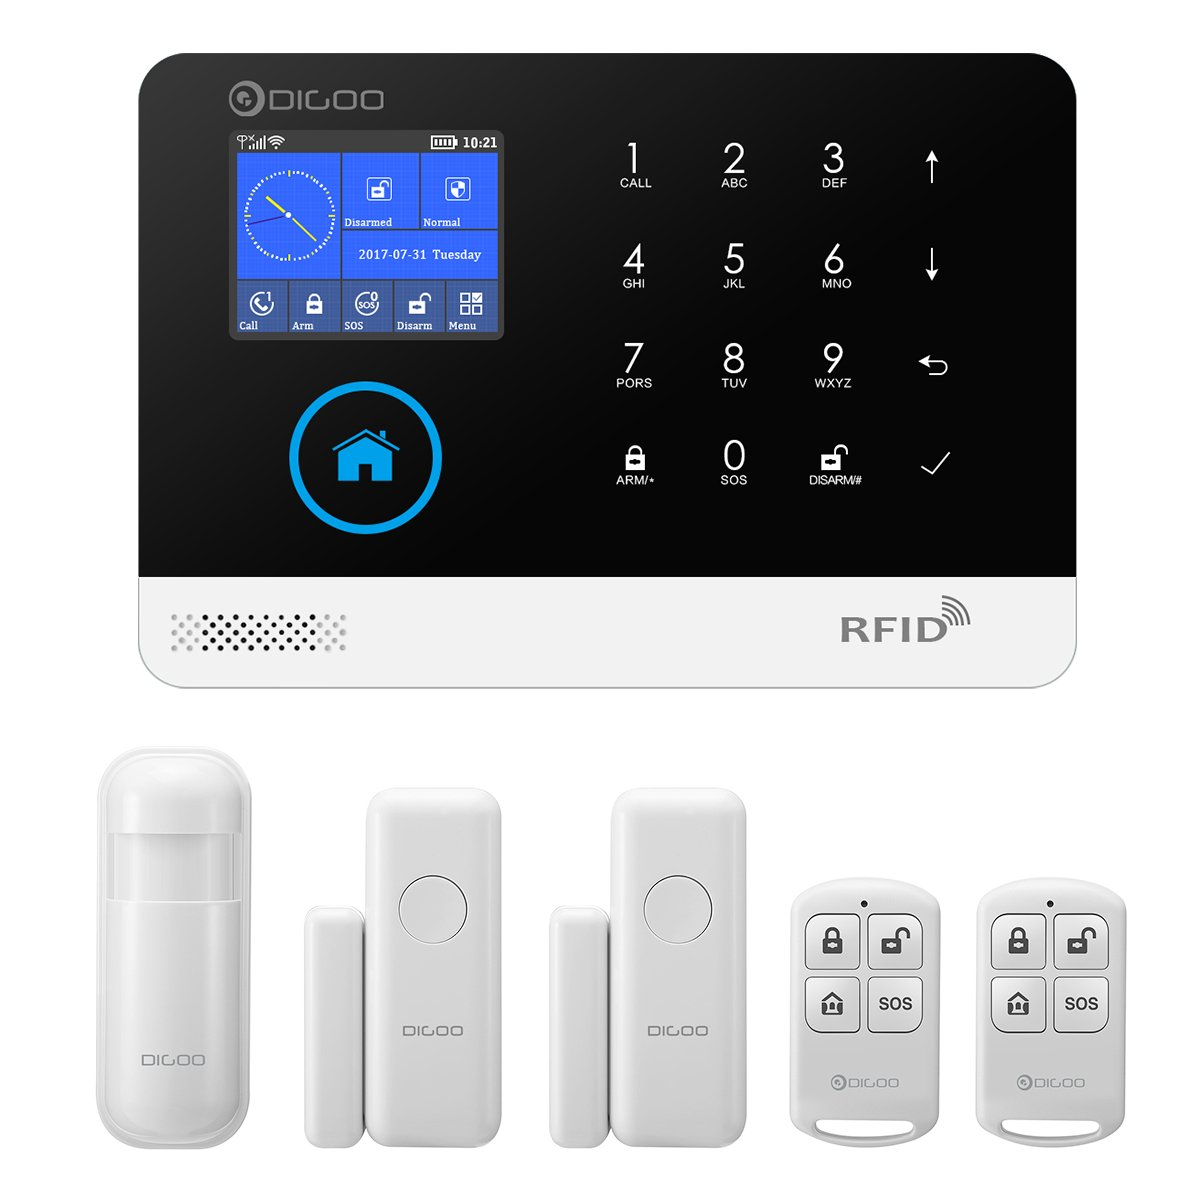 DIGOO Wireless 2G Home and Business Security Alarm System, with Auto Dial and APP Control Function, Come with PIR Detector, Door Window Sensor, and ...